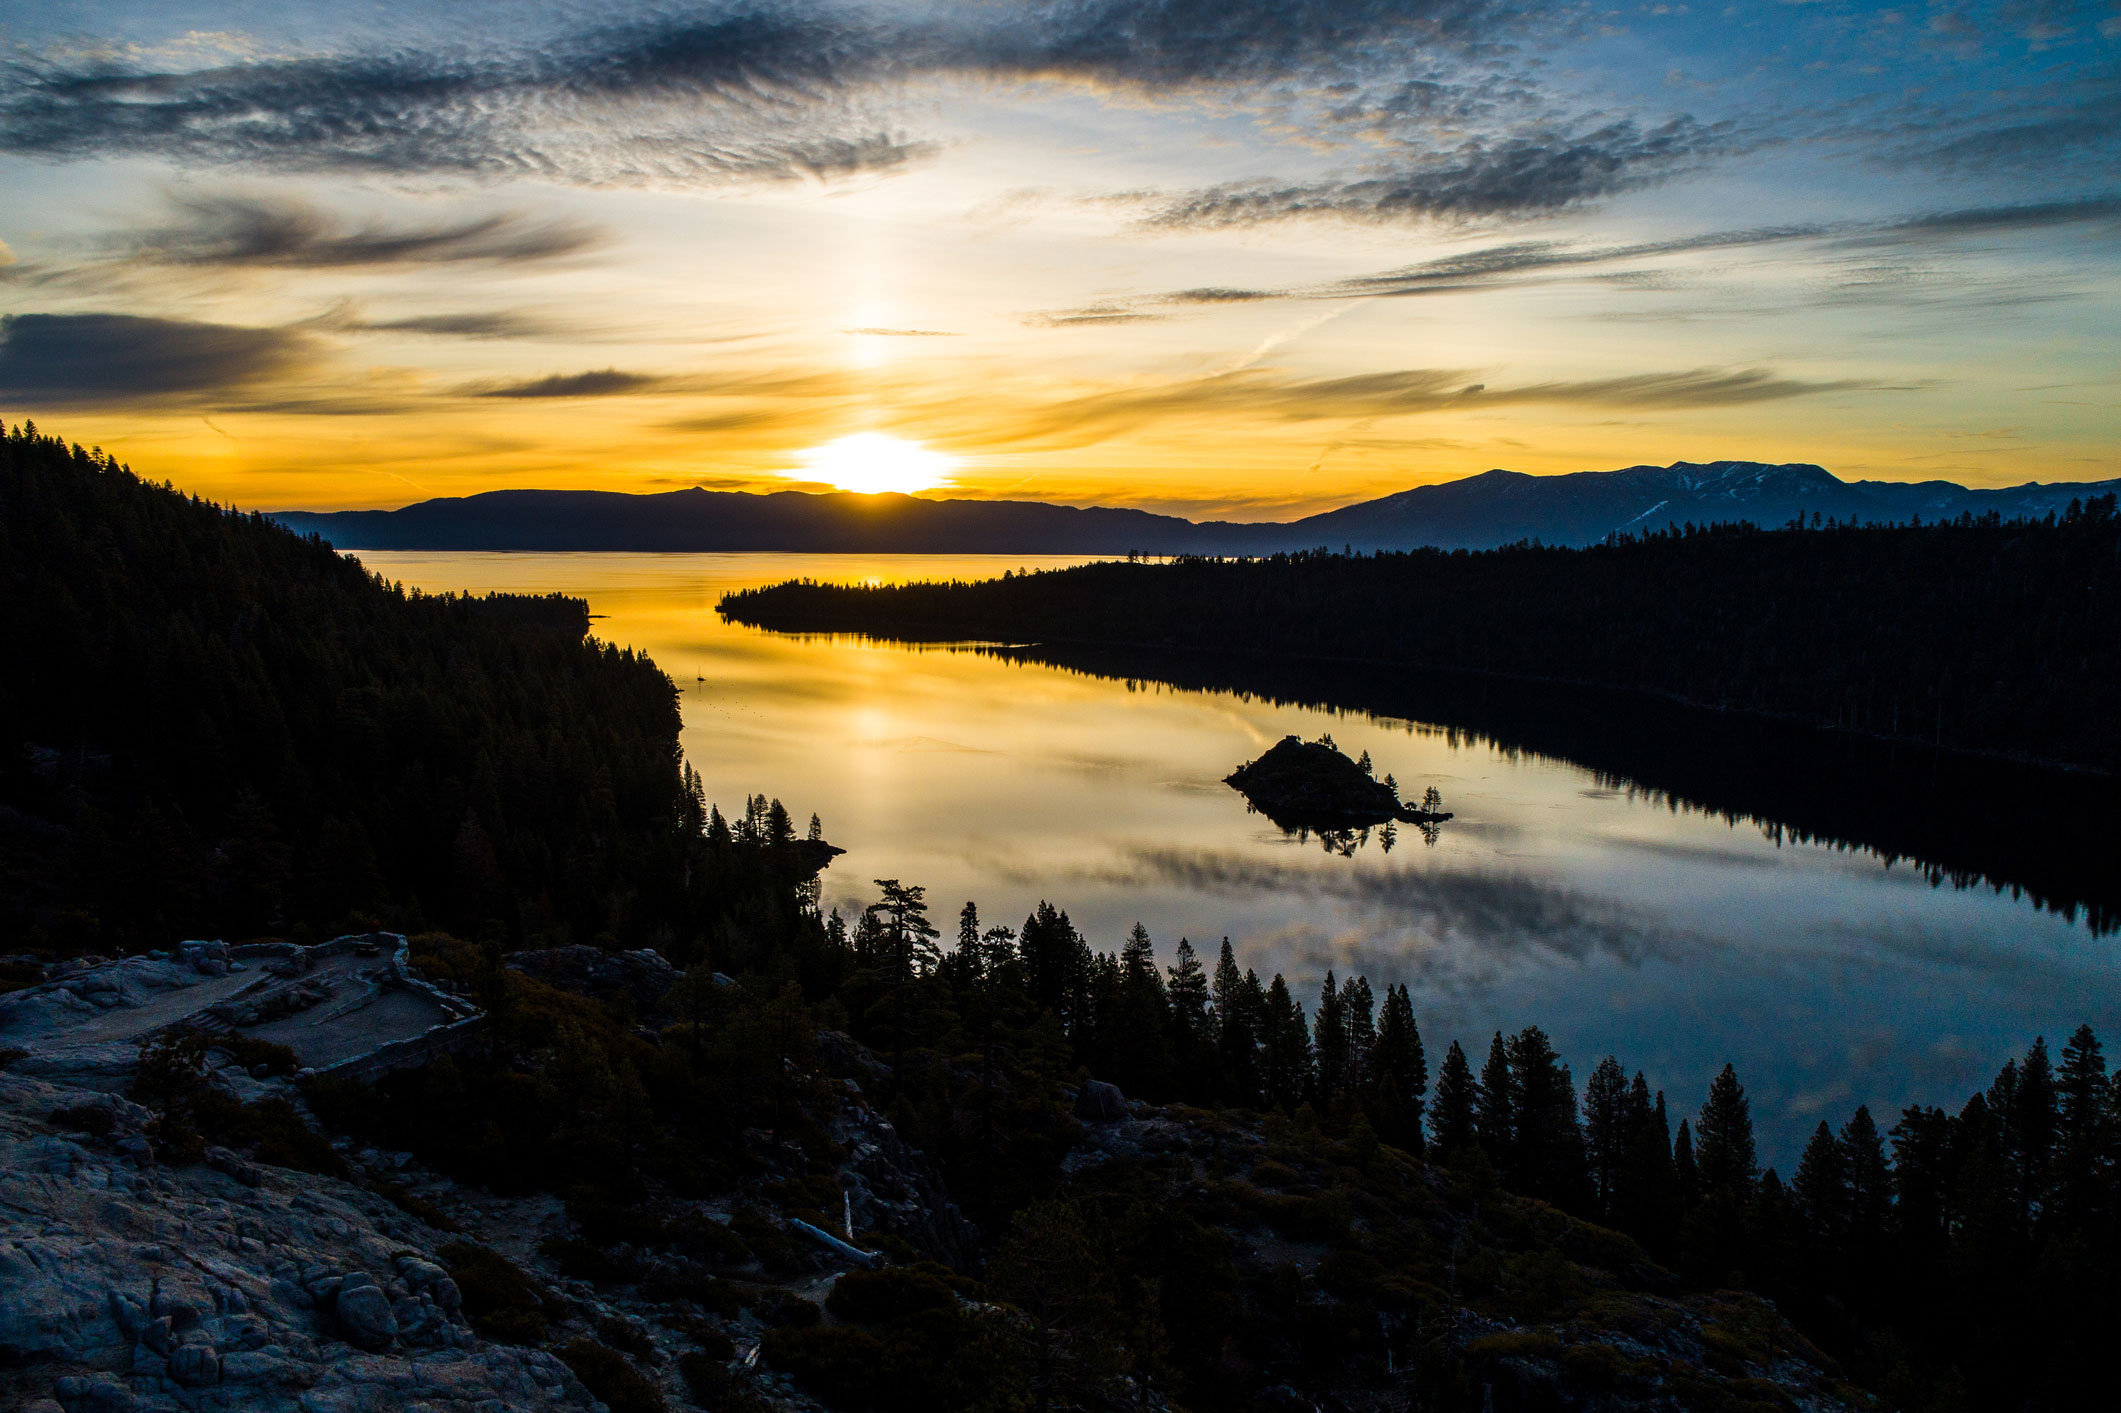 Emerald Bay in Lake Tahoe during sunrise.